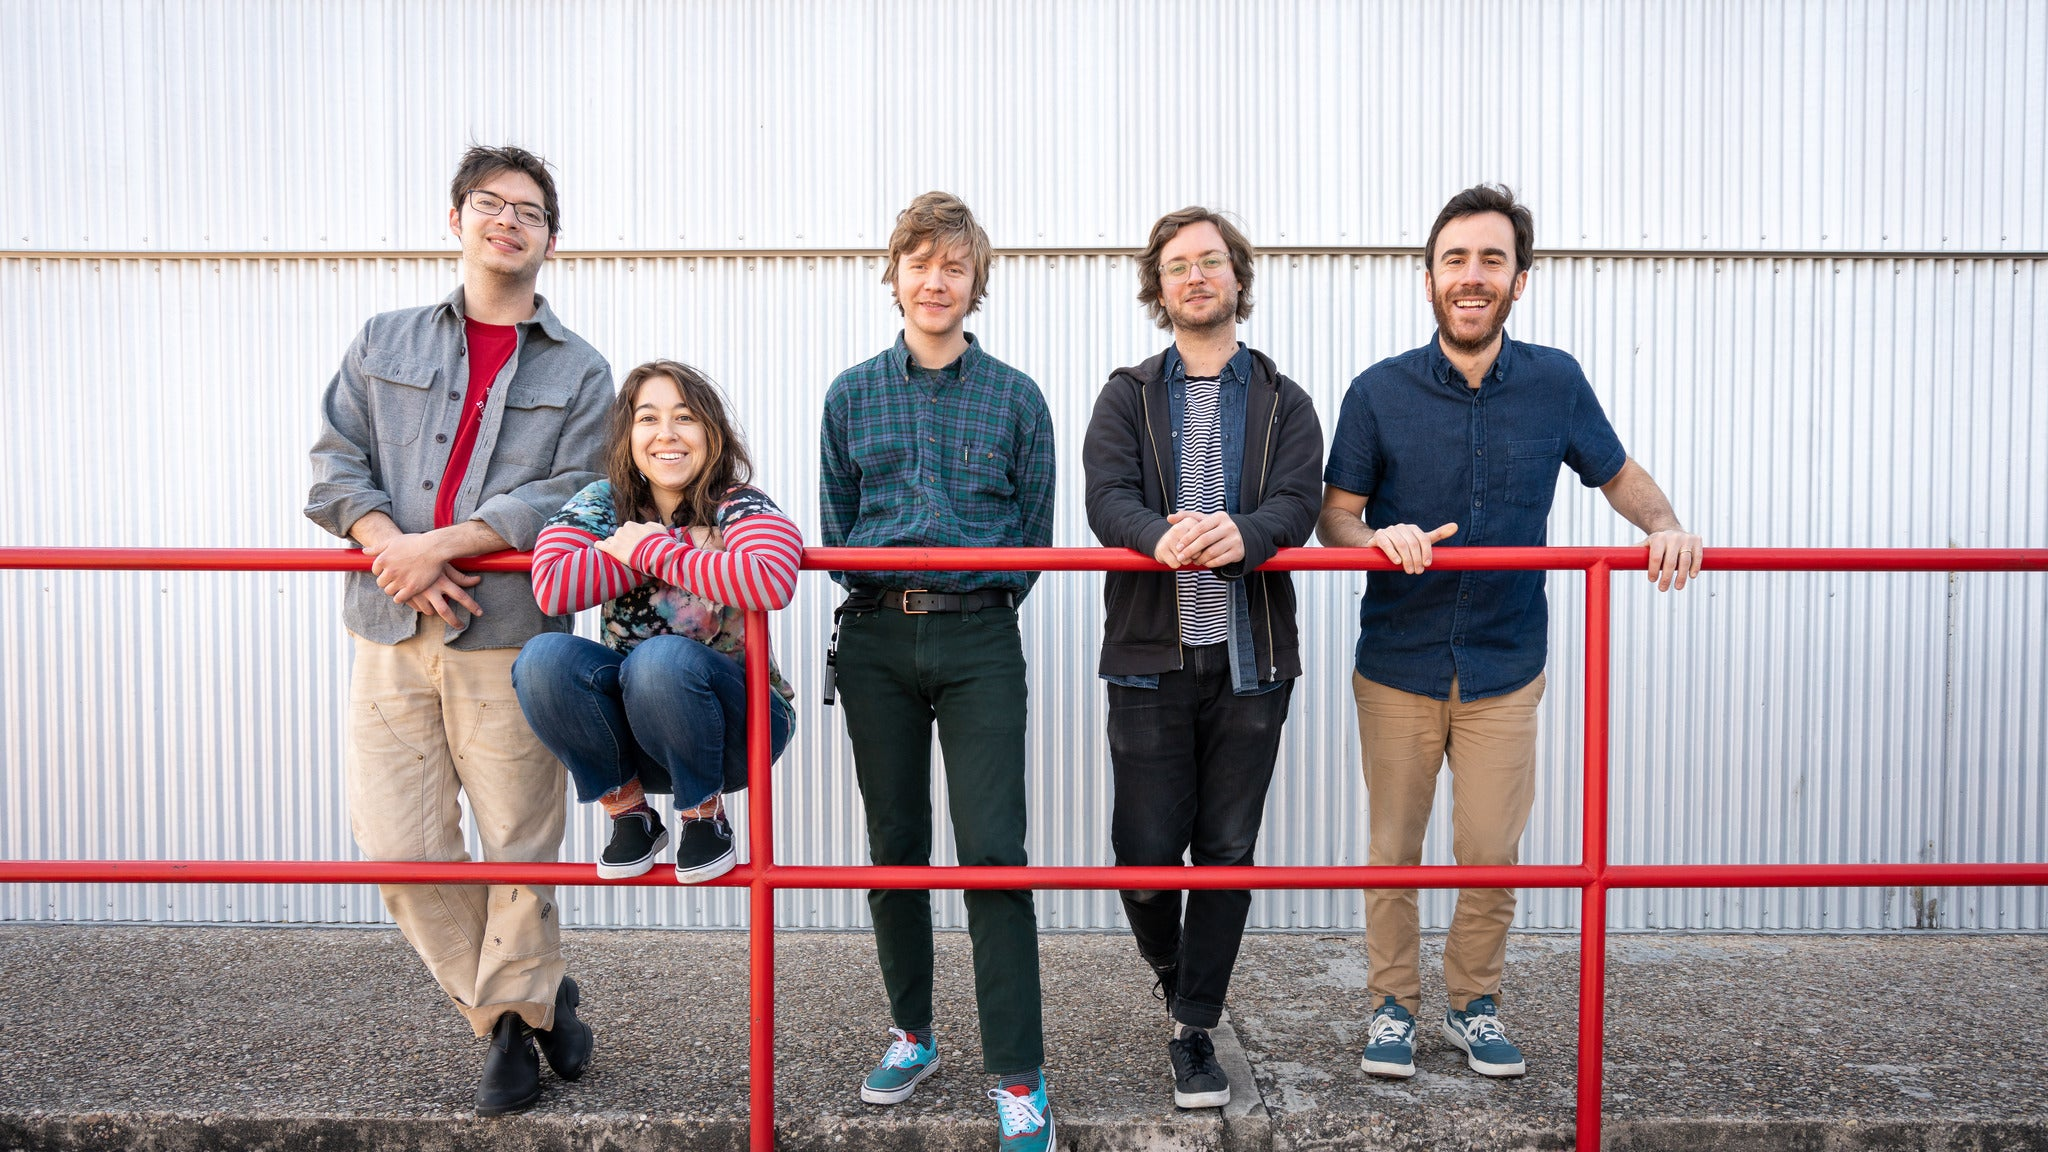 Pinegrove at The Wellmont Theater